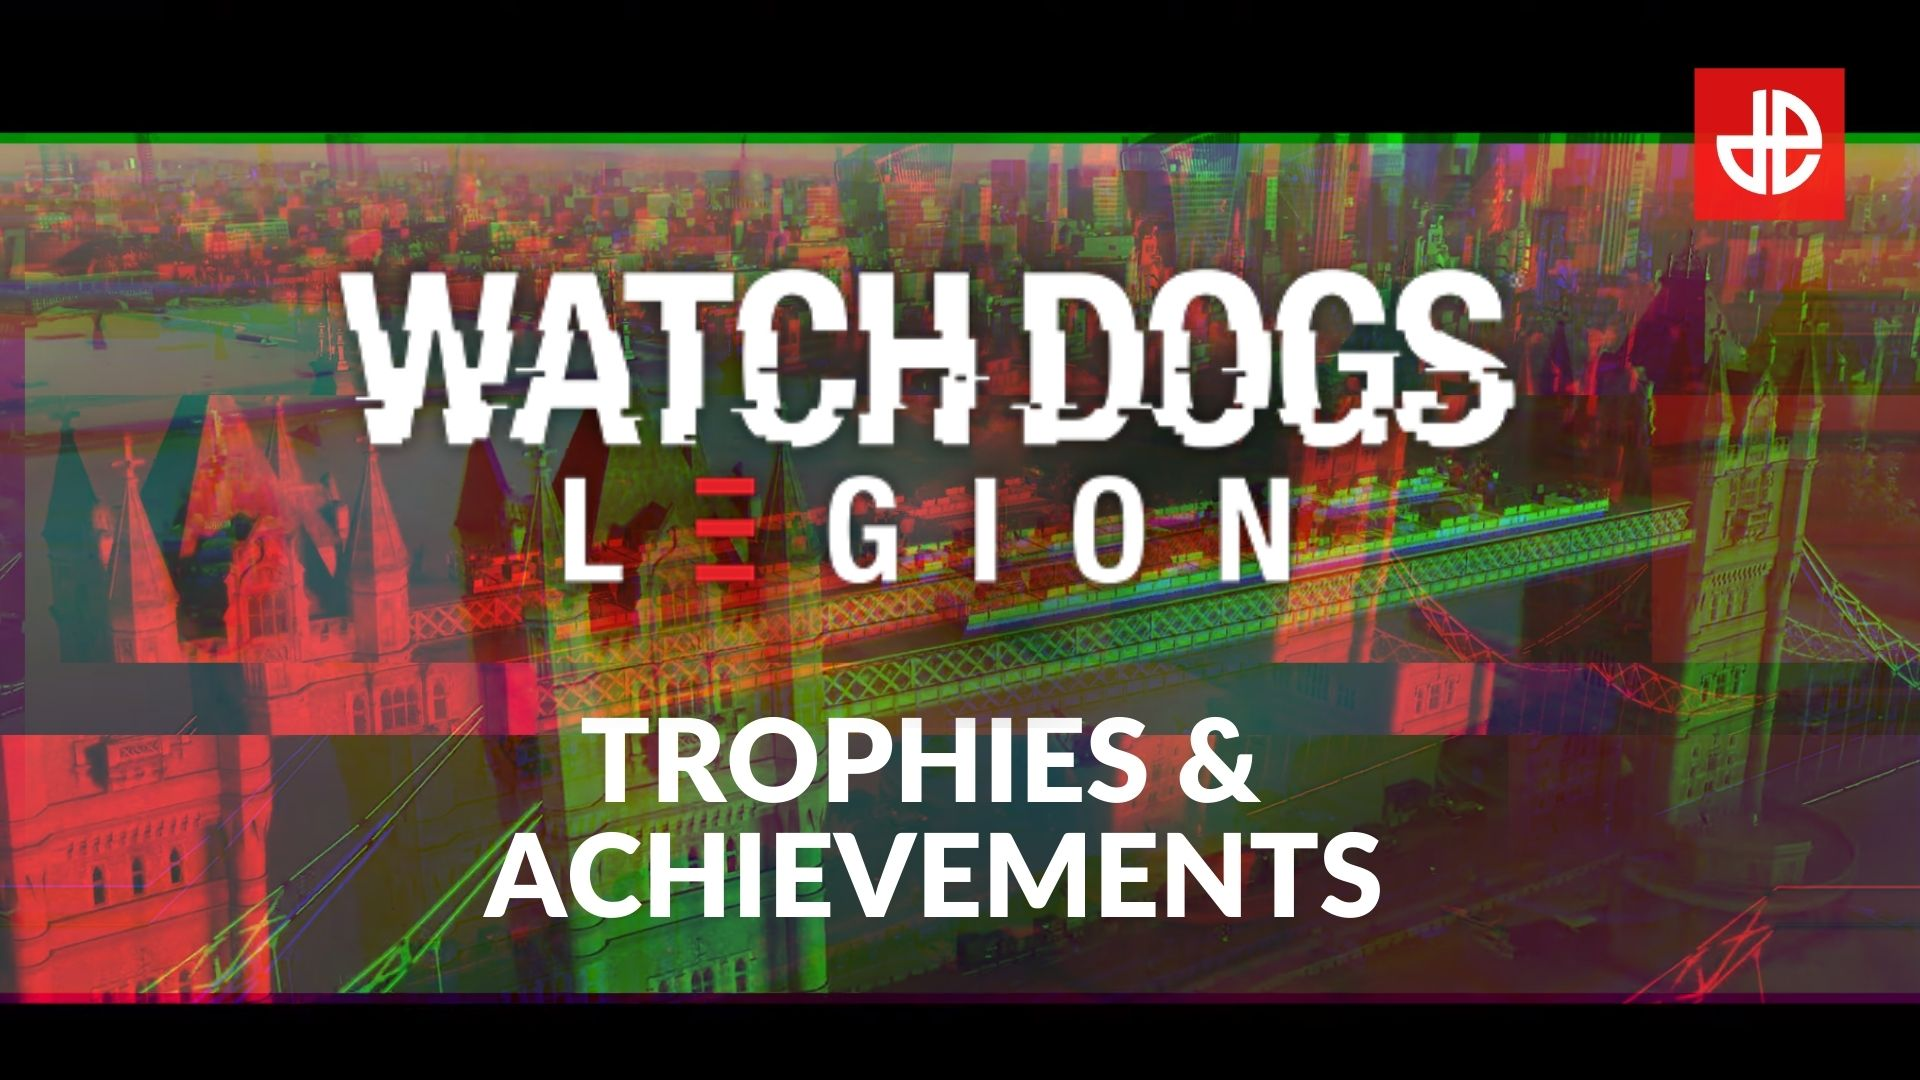 Text advertising trophies and achievements for Watch Dogs Legion